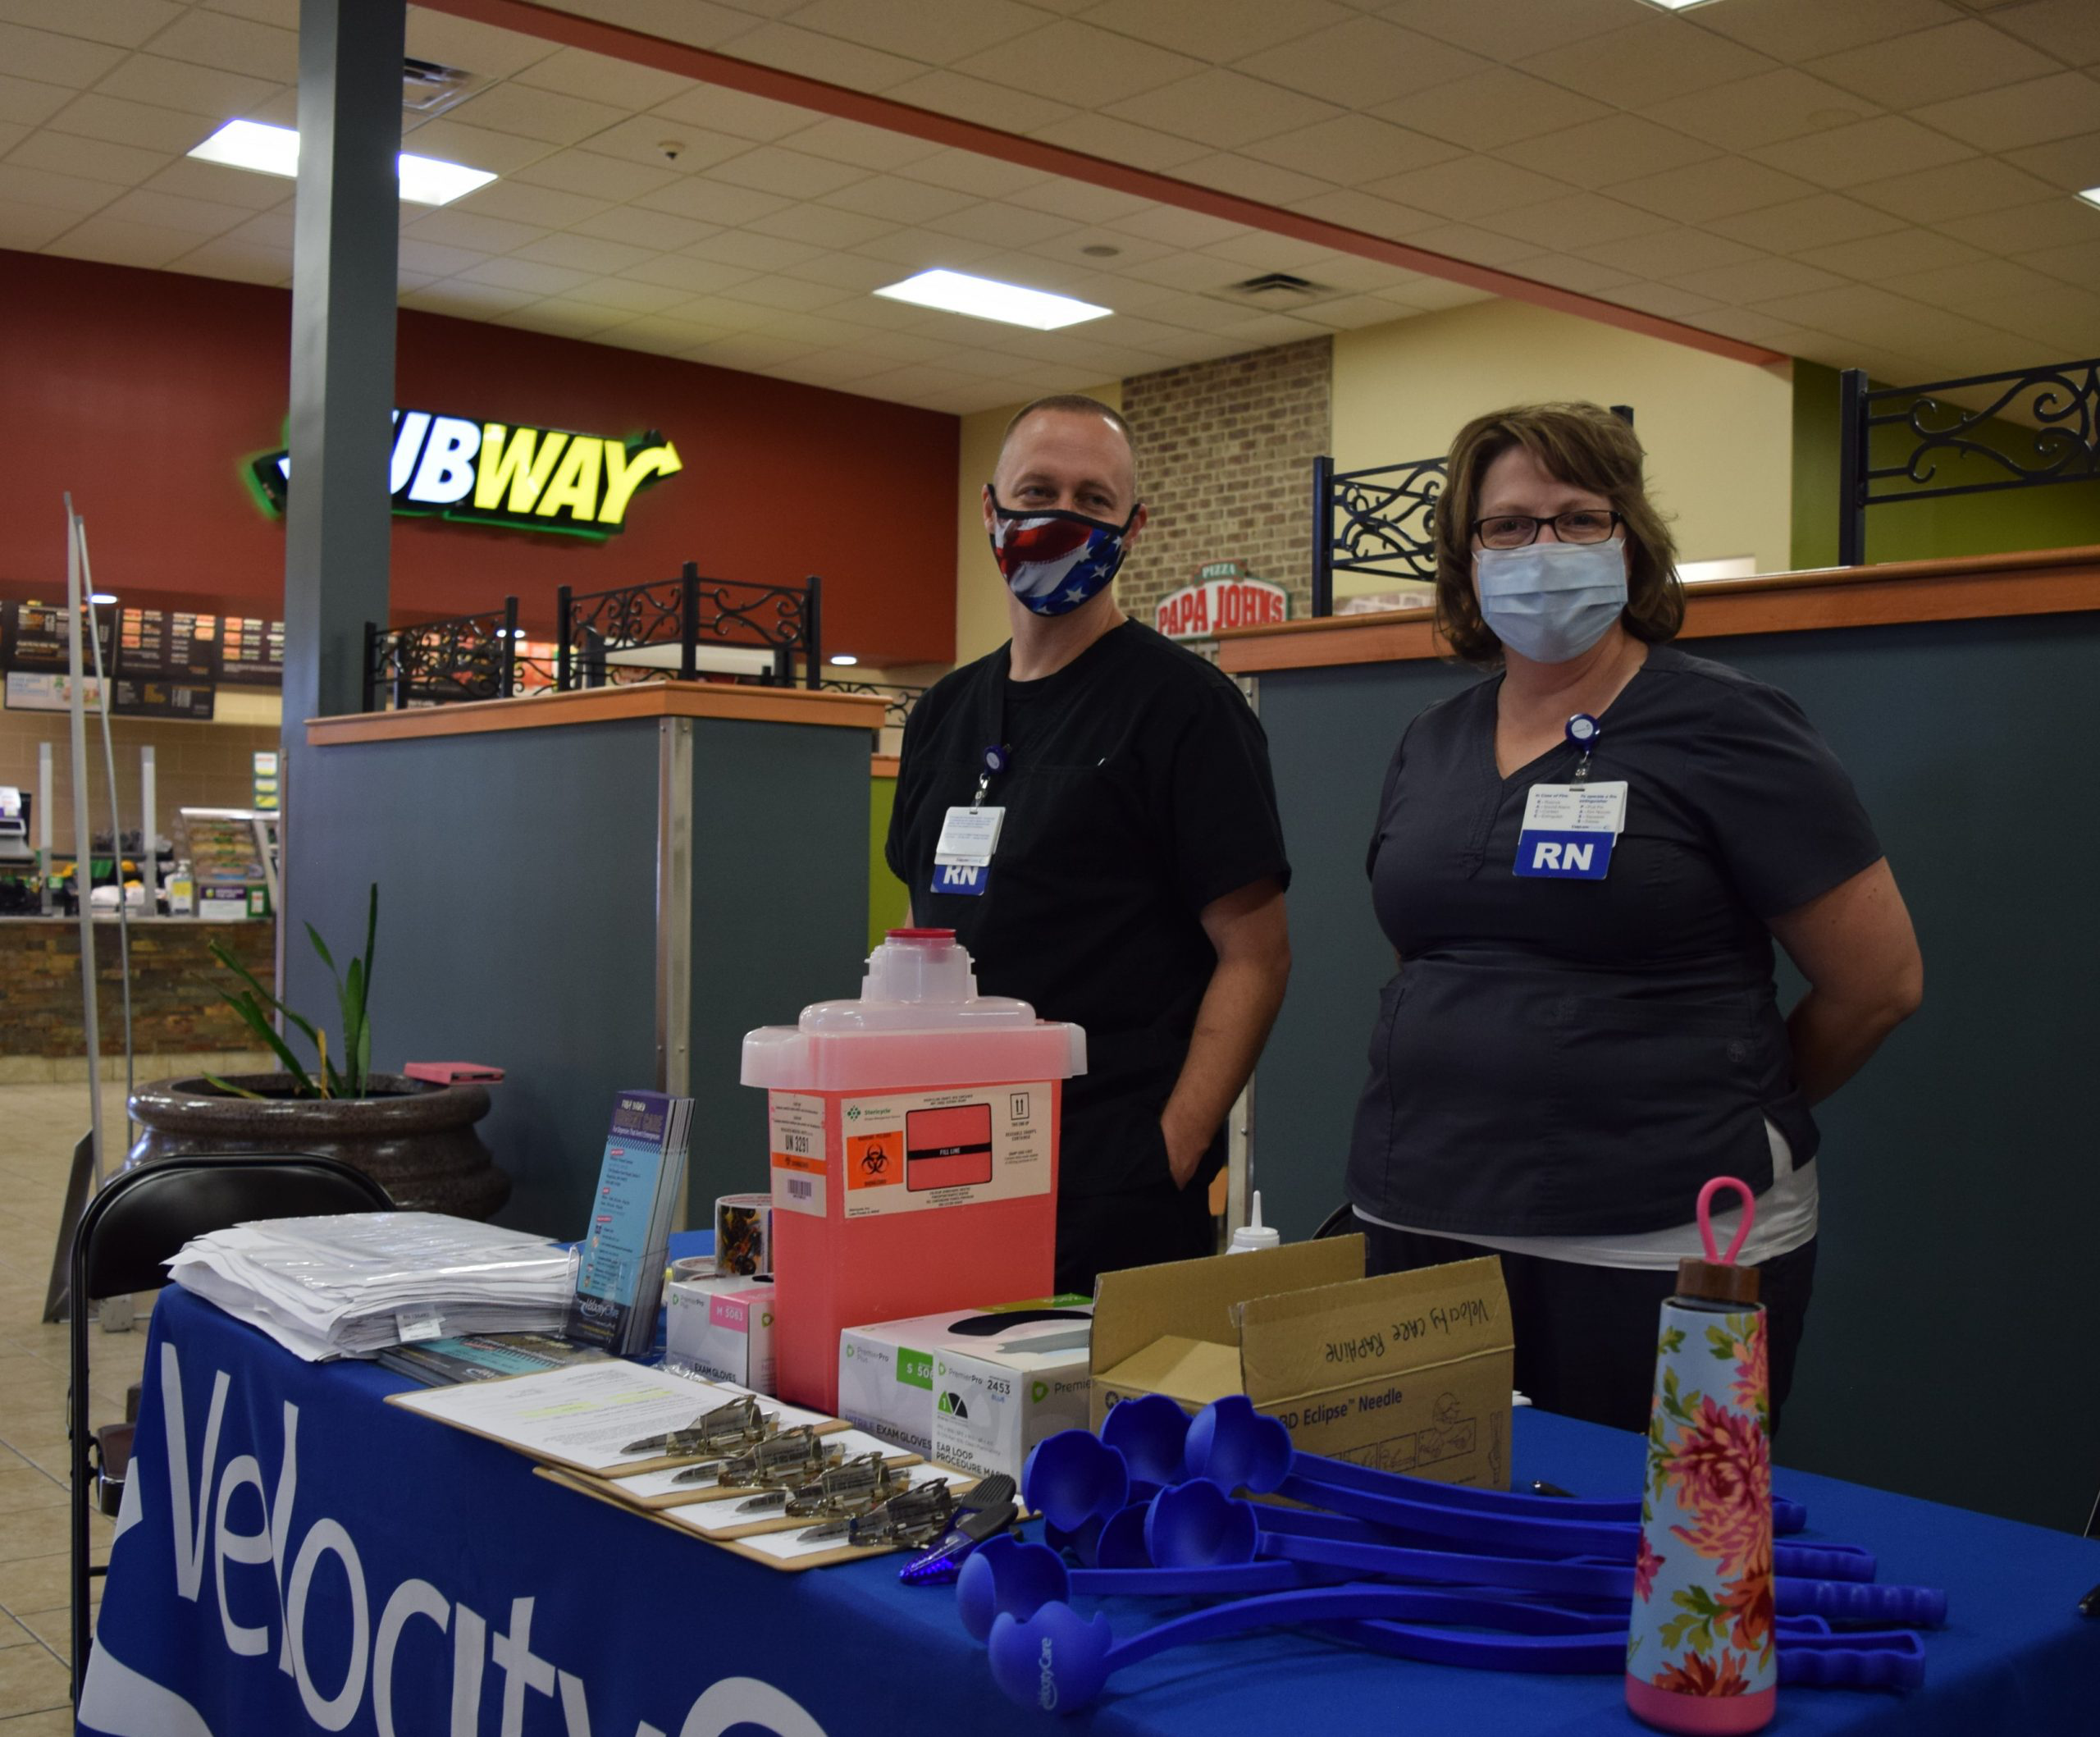 Carillion Clinic RNs distributing masks, sanitizer, and more, as well as offering free flu shots